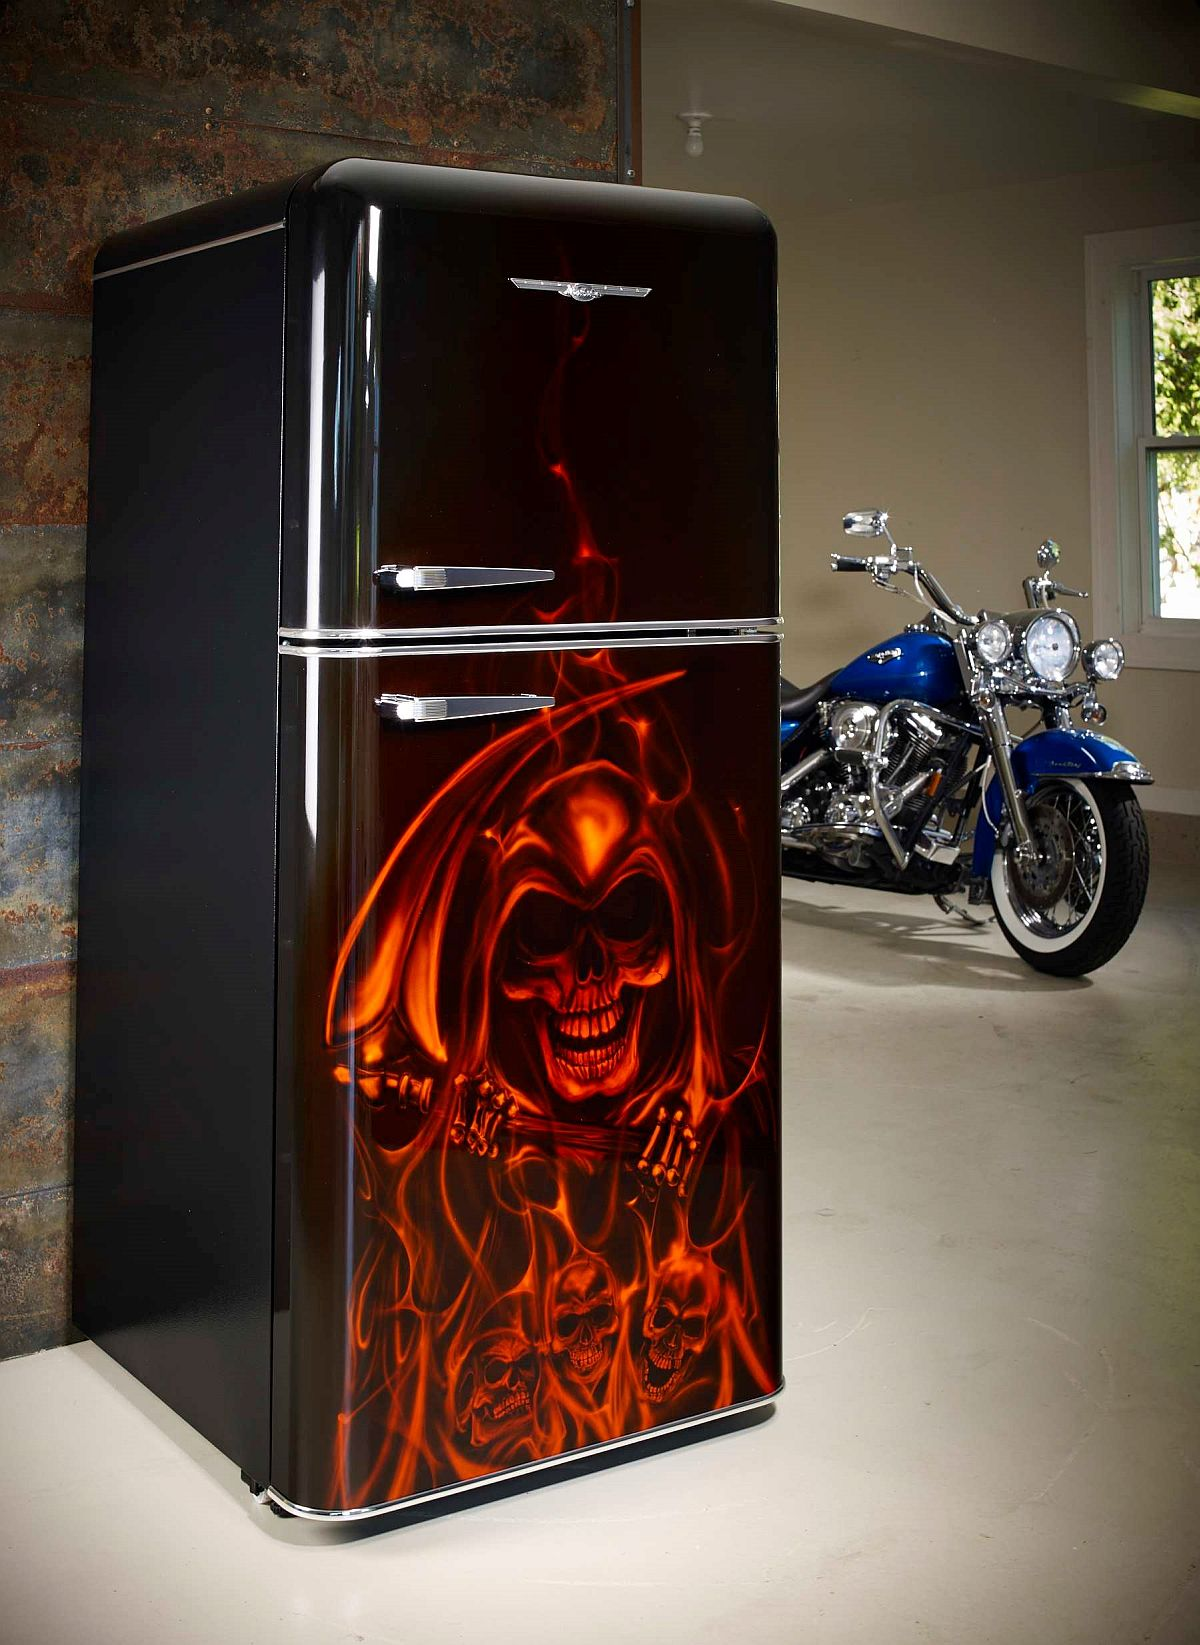 Custom air-brushed fridge with airbrushed flames and skulls!